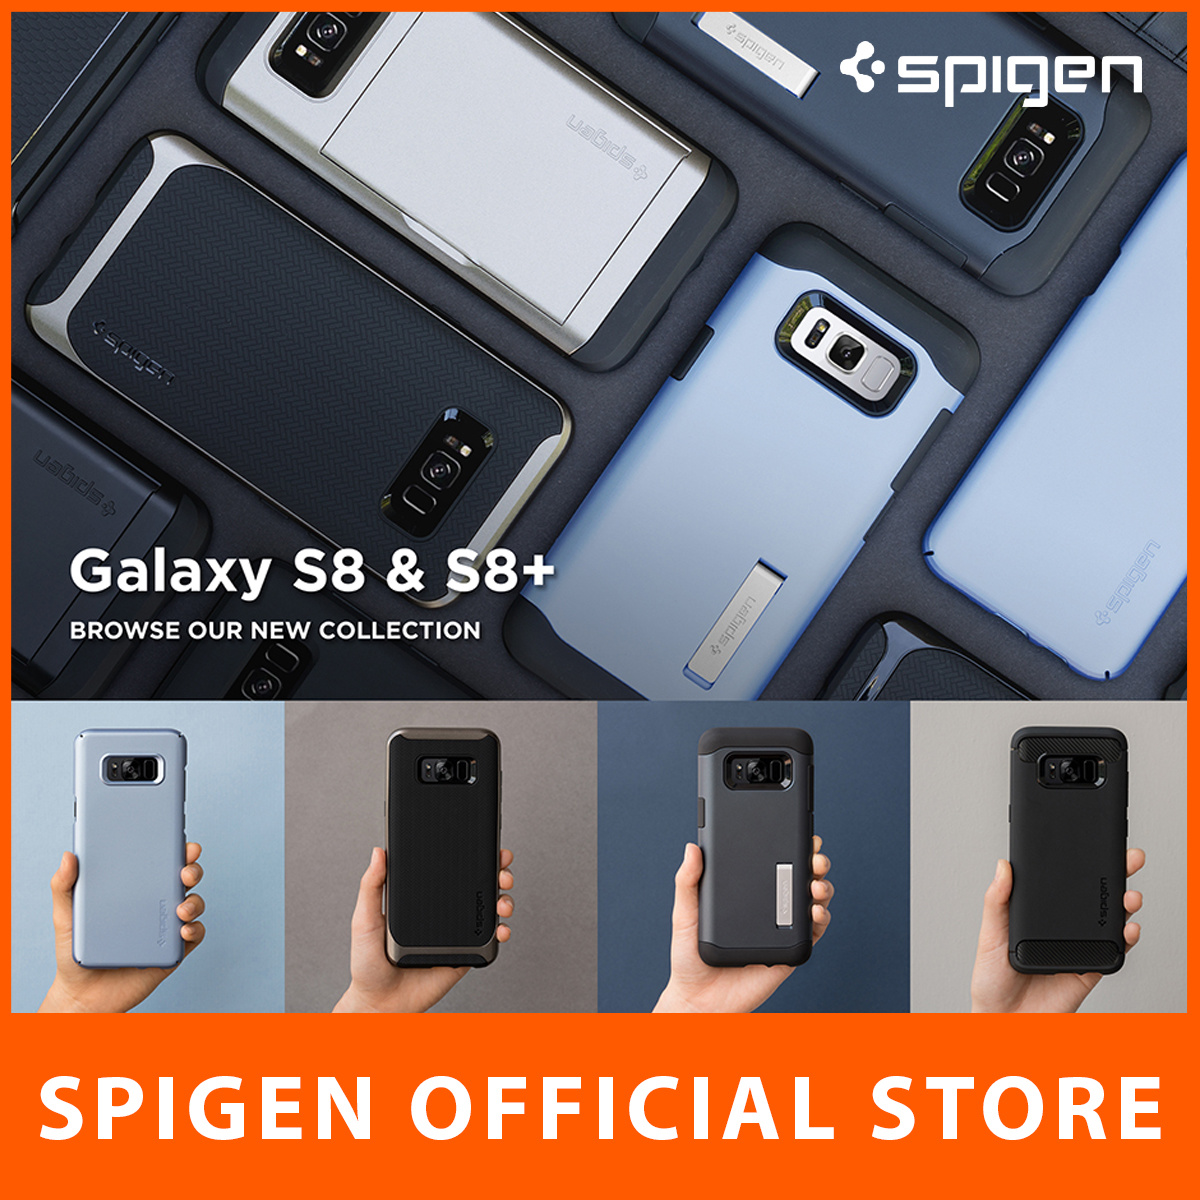 Qoo10 Spigen S8 Plus Mobile Accessories Galaxy Note 9 Case Slim Armor Crystal Original Clear Show All Item Images